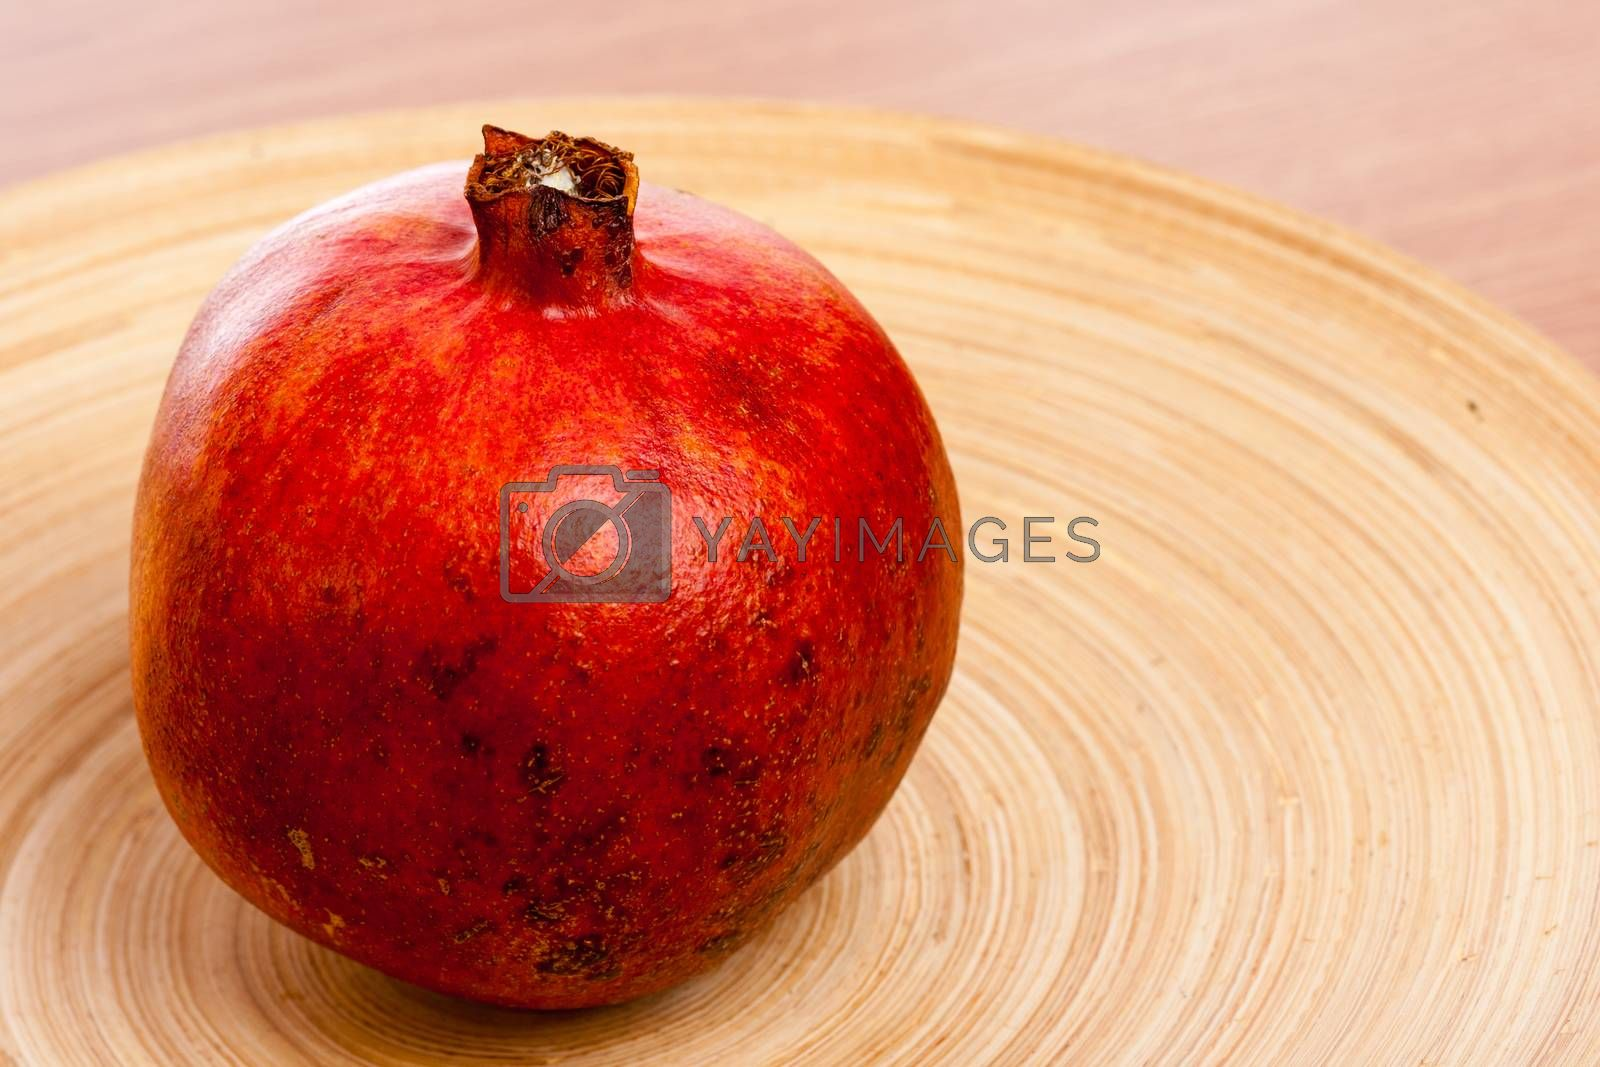 Royalty free image of pomegranate by furo_felix